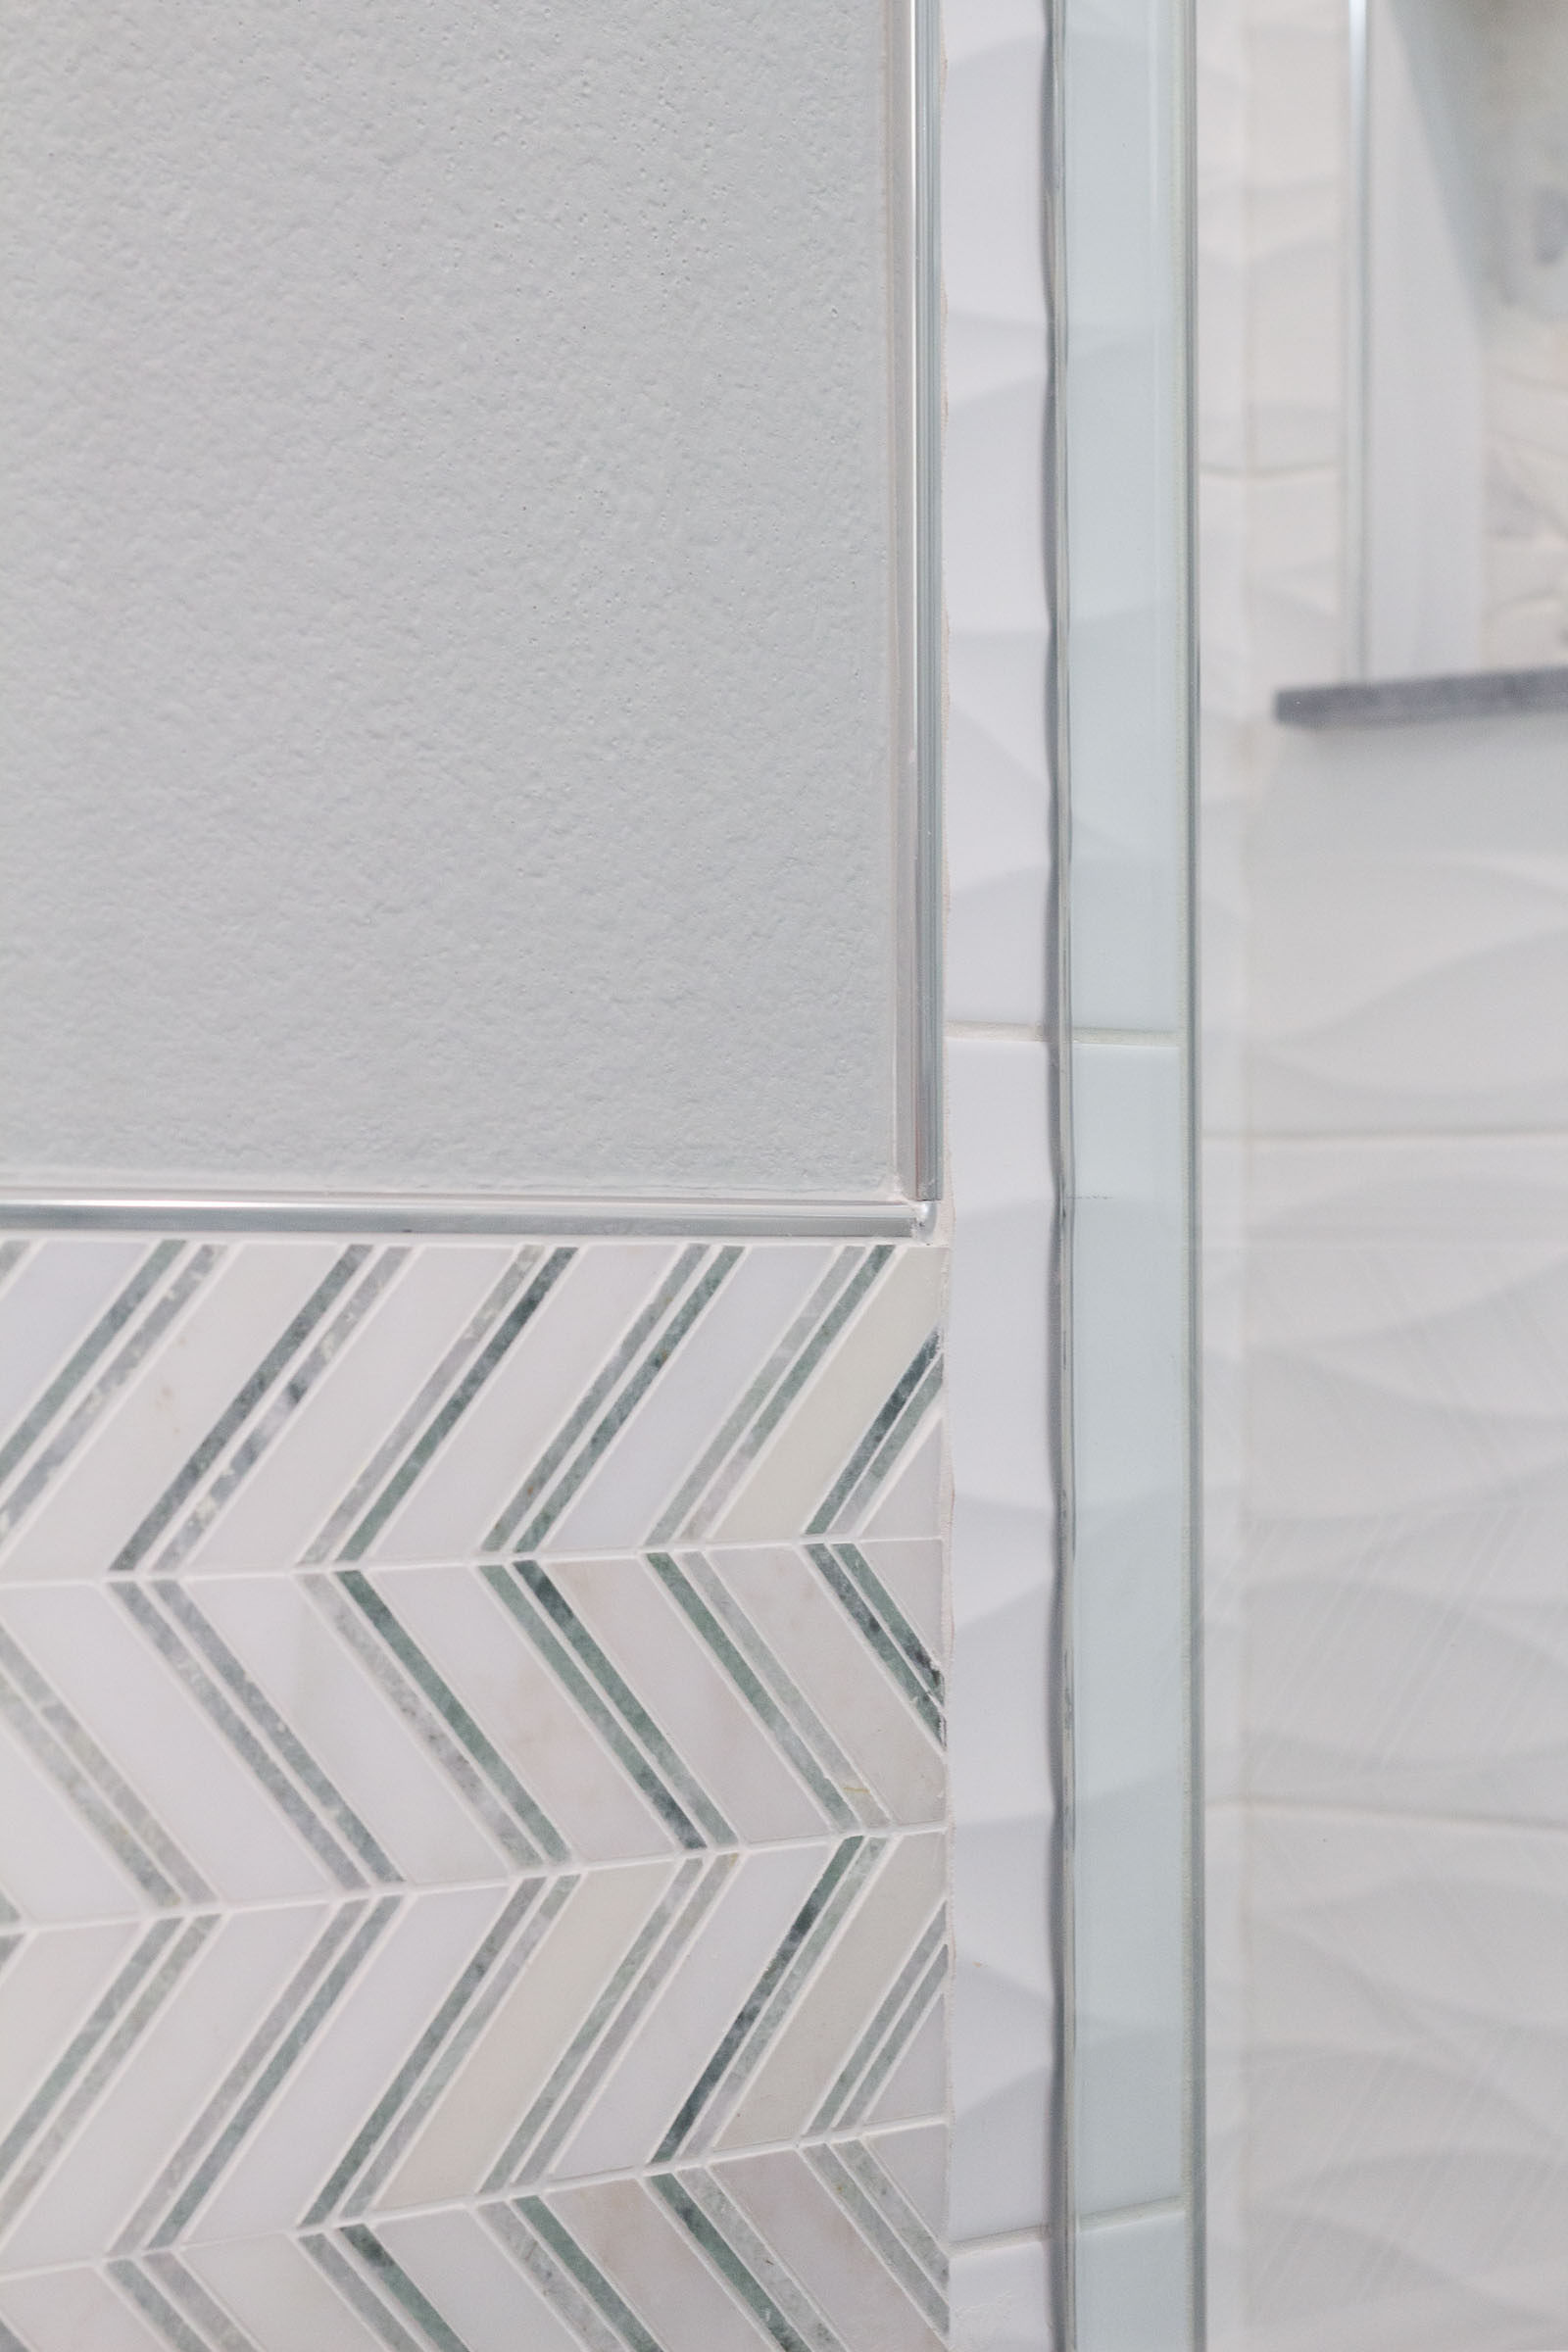 Bathroom remodel with chevron white and grey tile, soft grey paint, and stainless steel bullnose